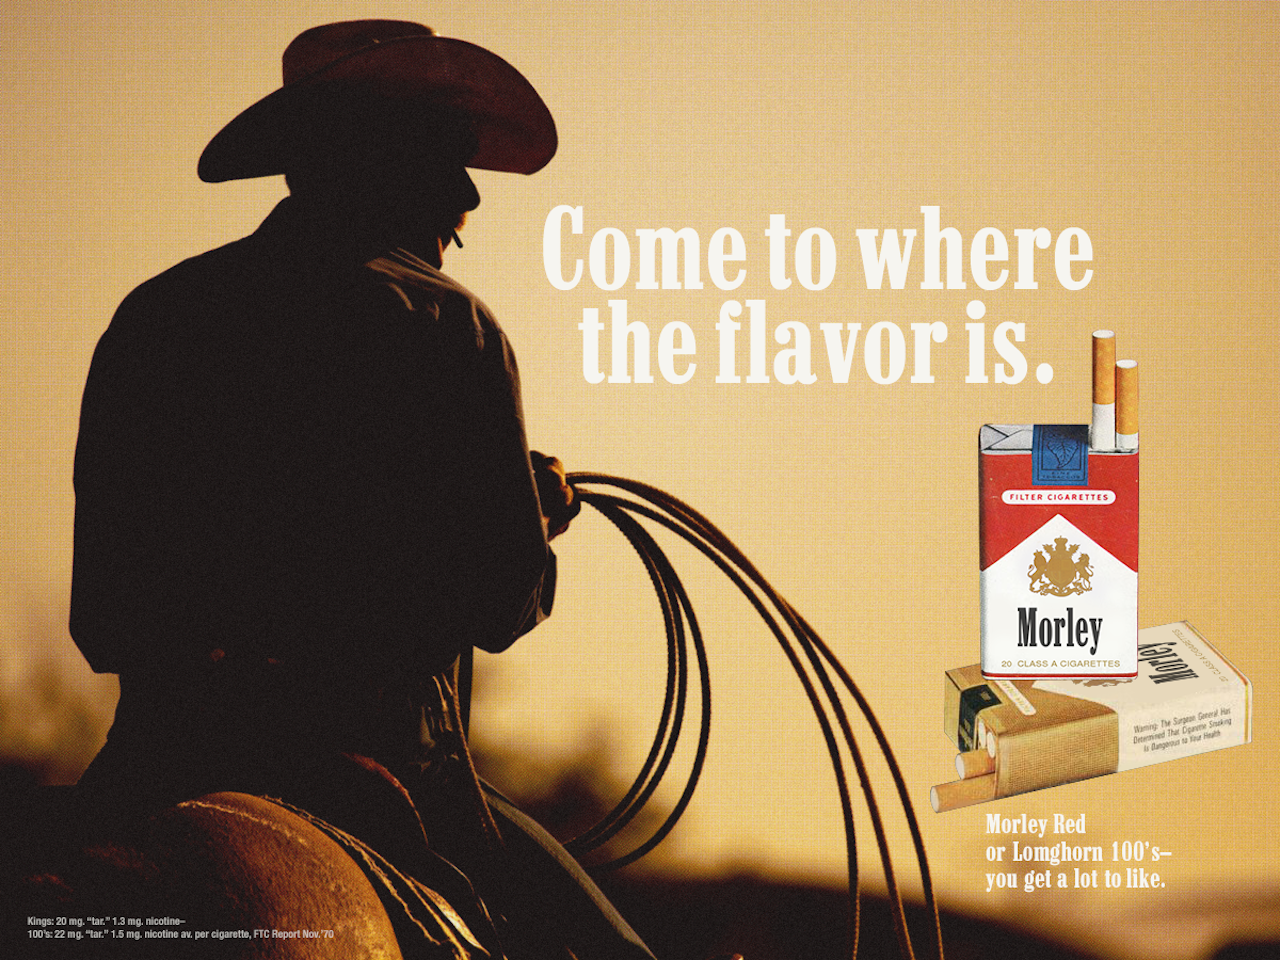 Fake ad for Morley cigarettes